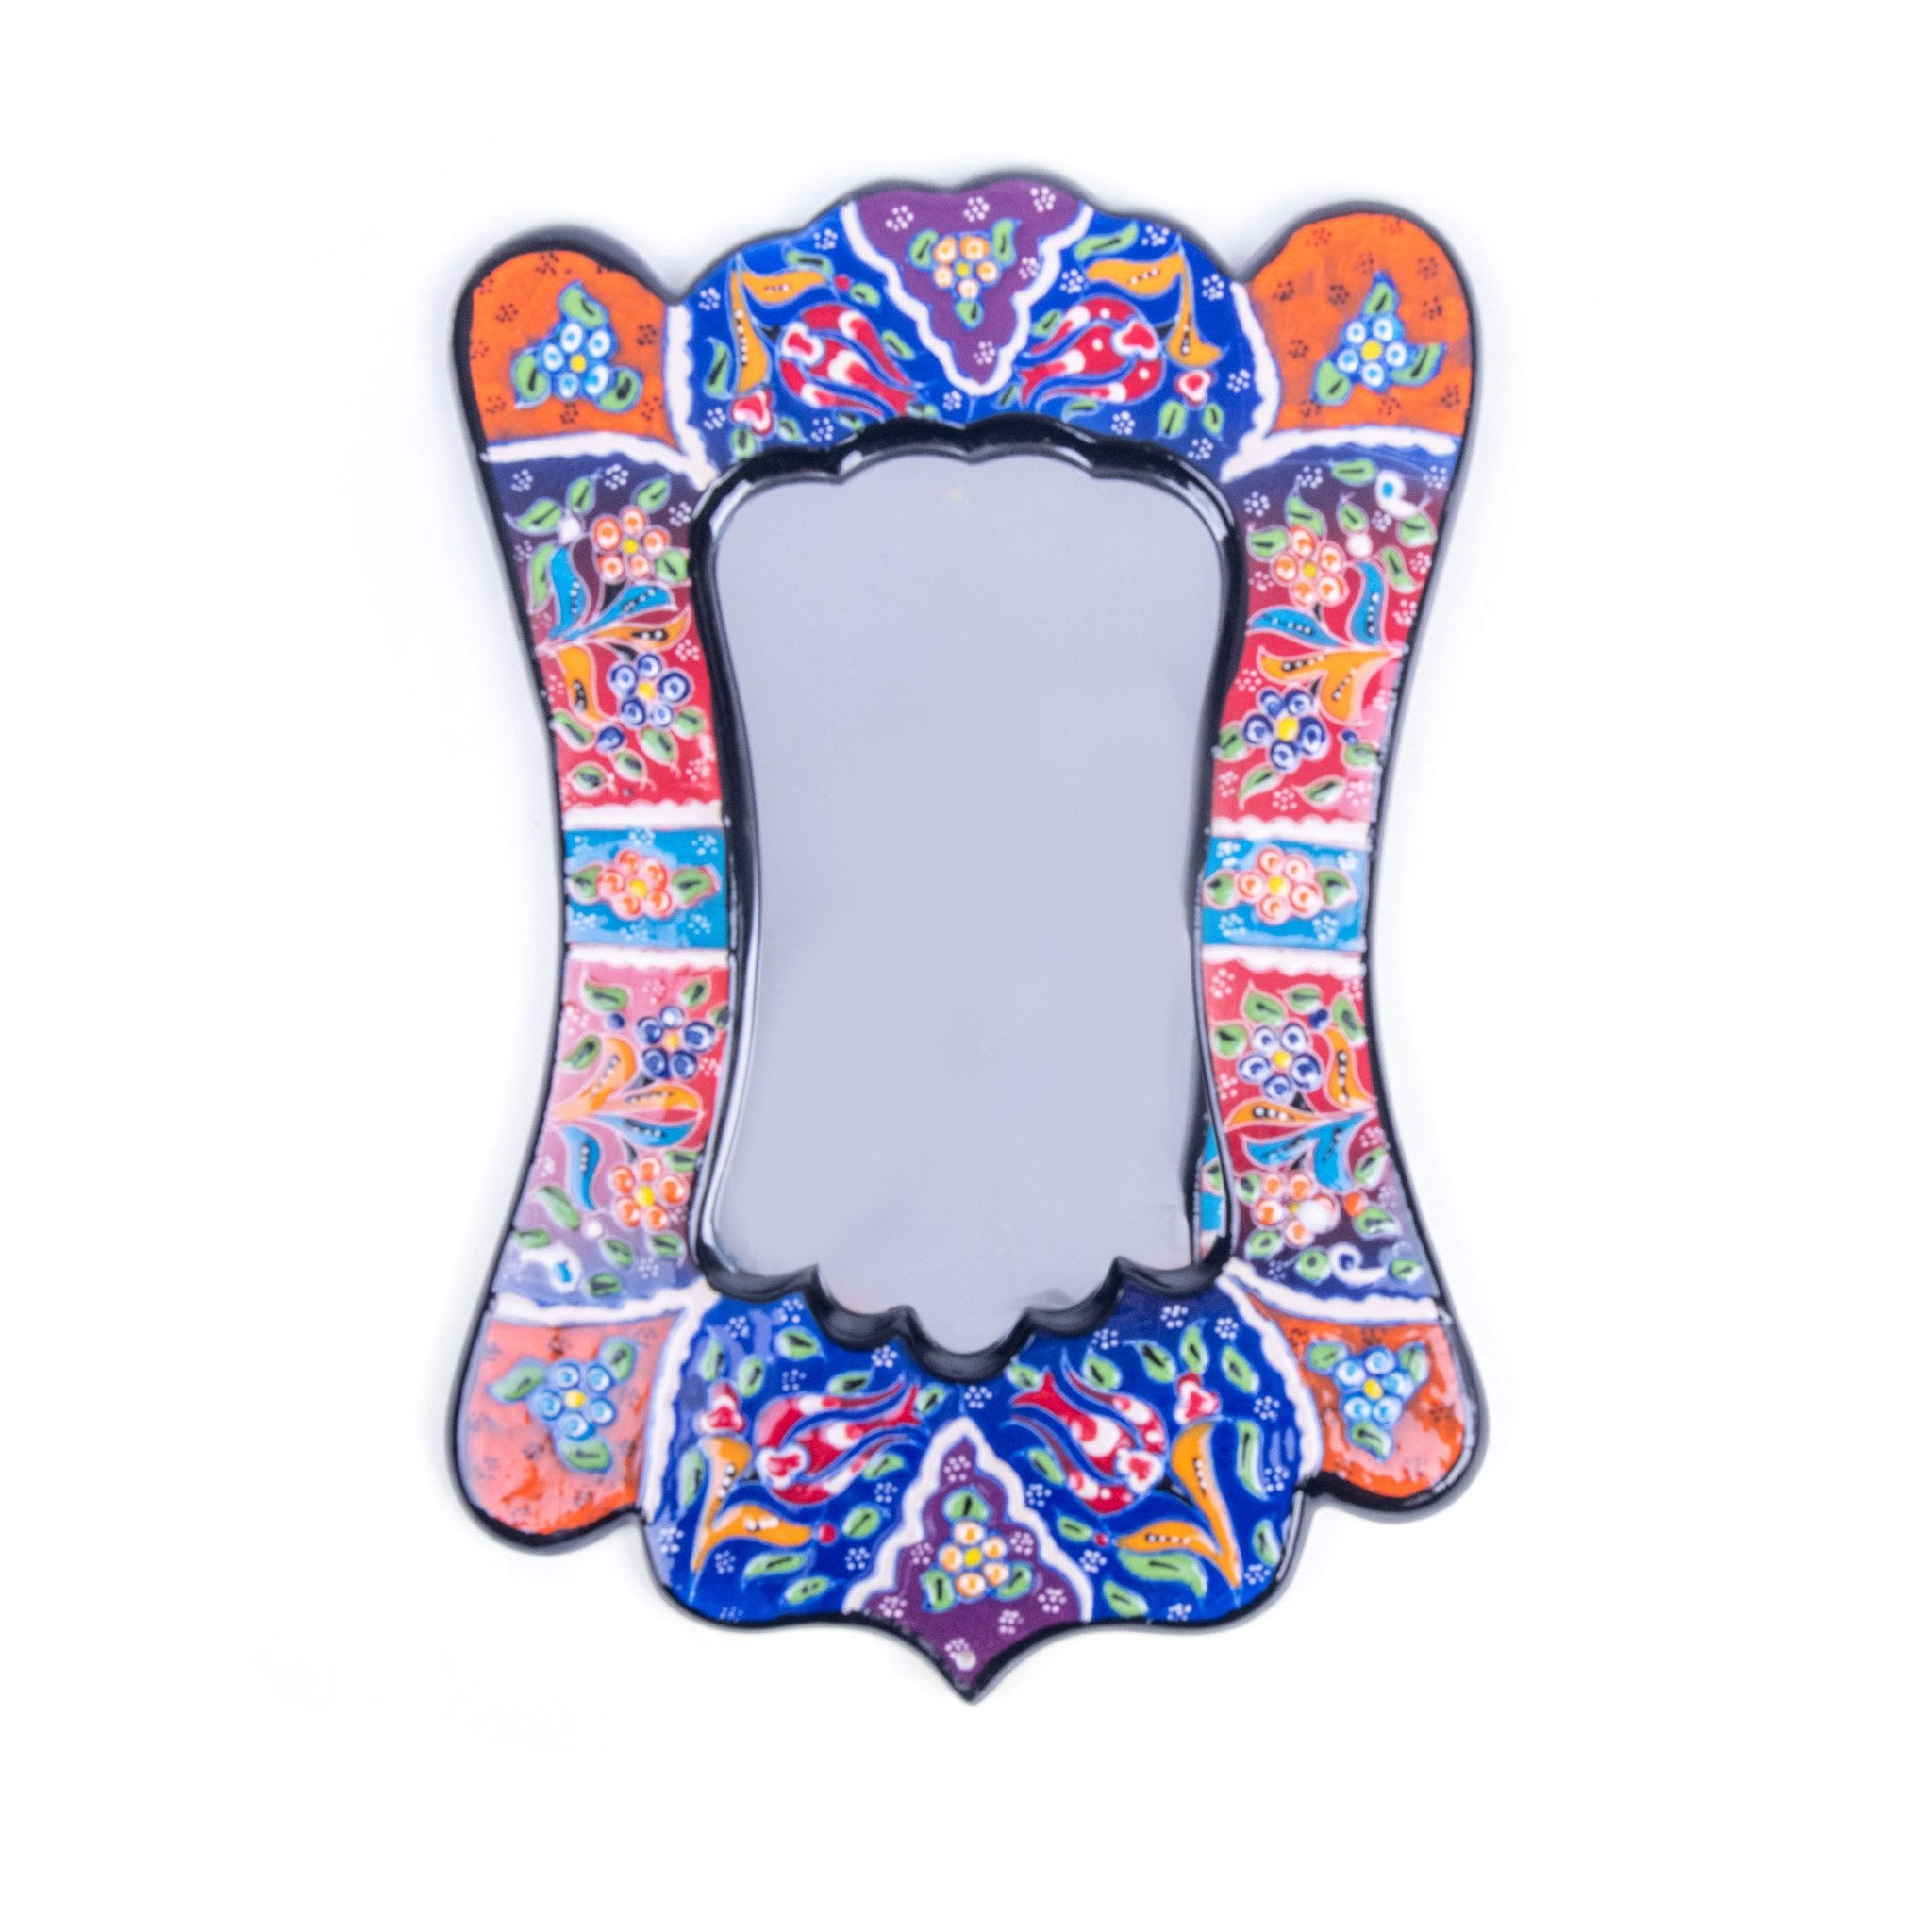 Turkish Ceramic Kutahya Design Handmade Angled Mirror - 30 cm (12'')